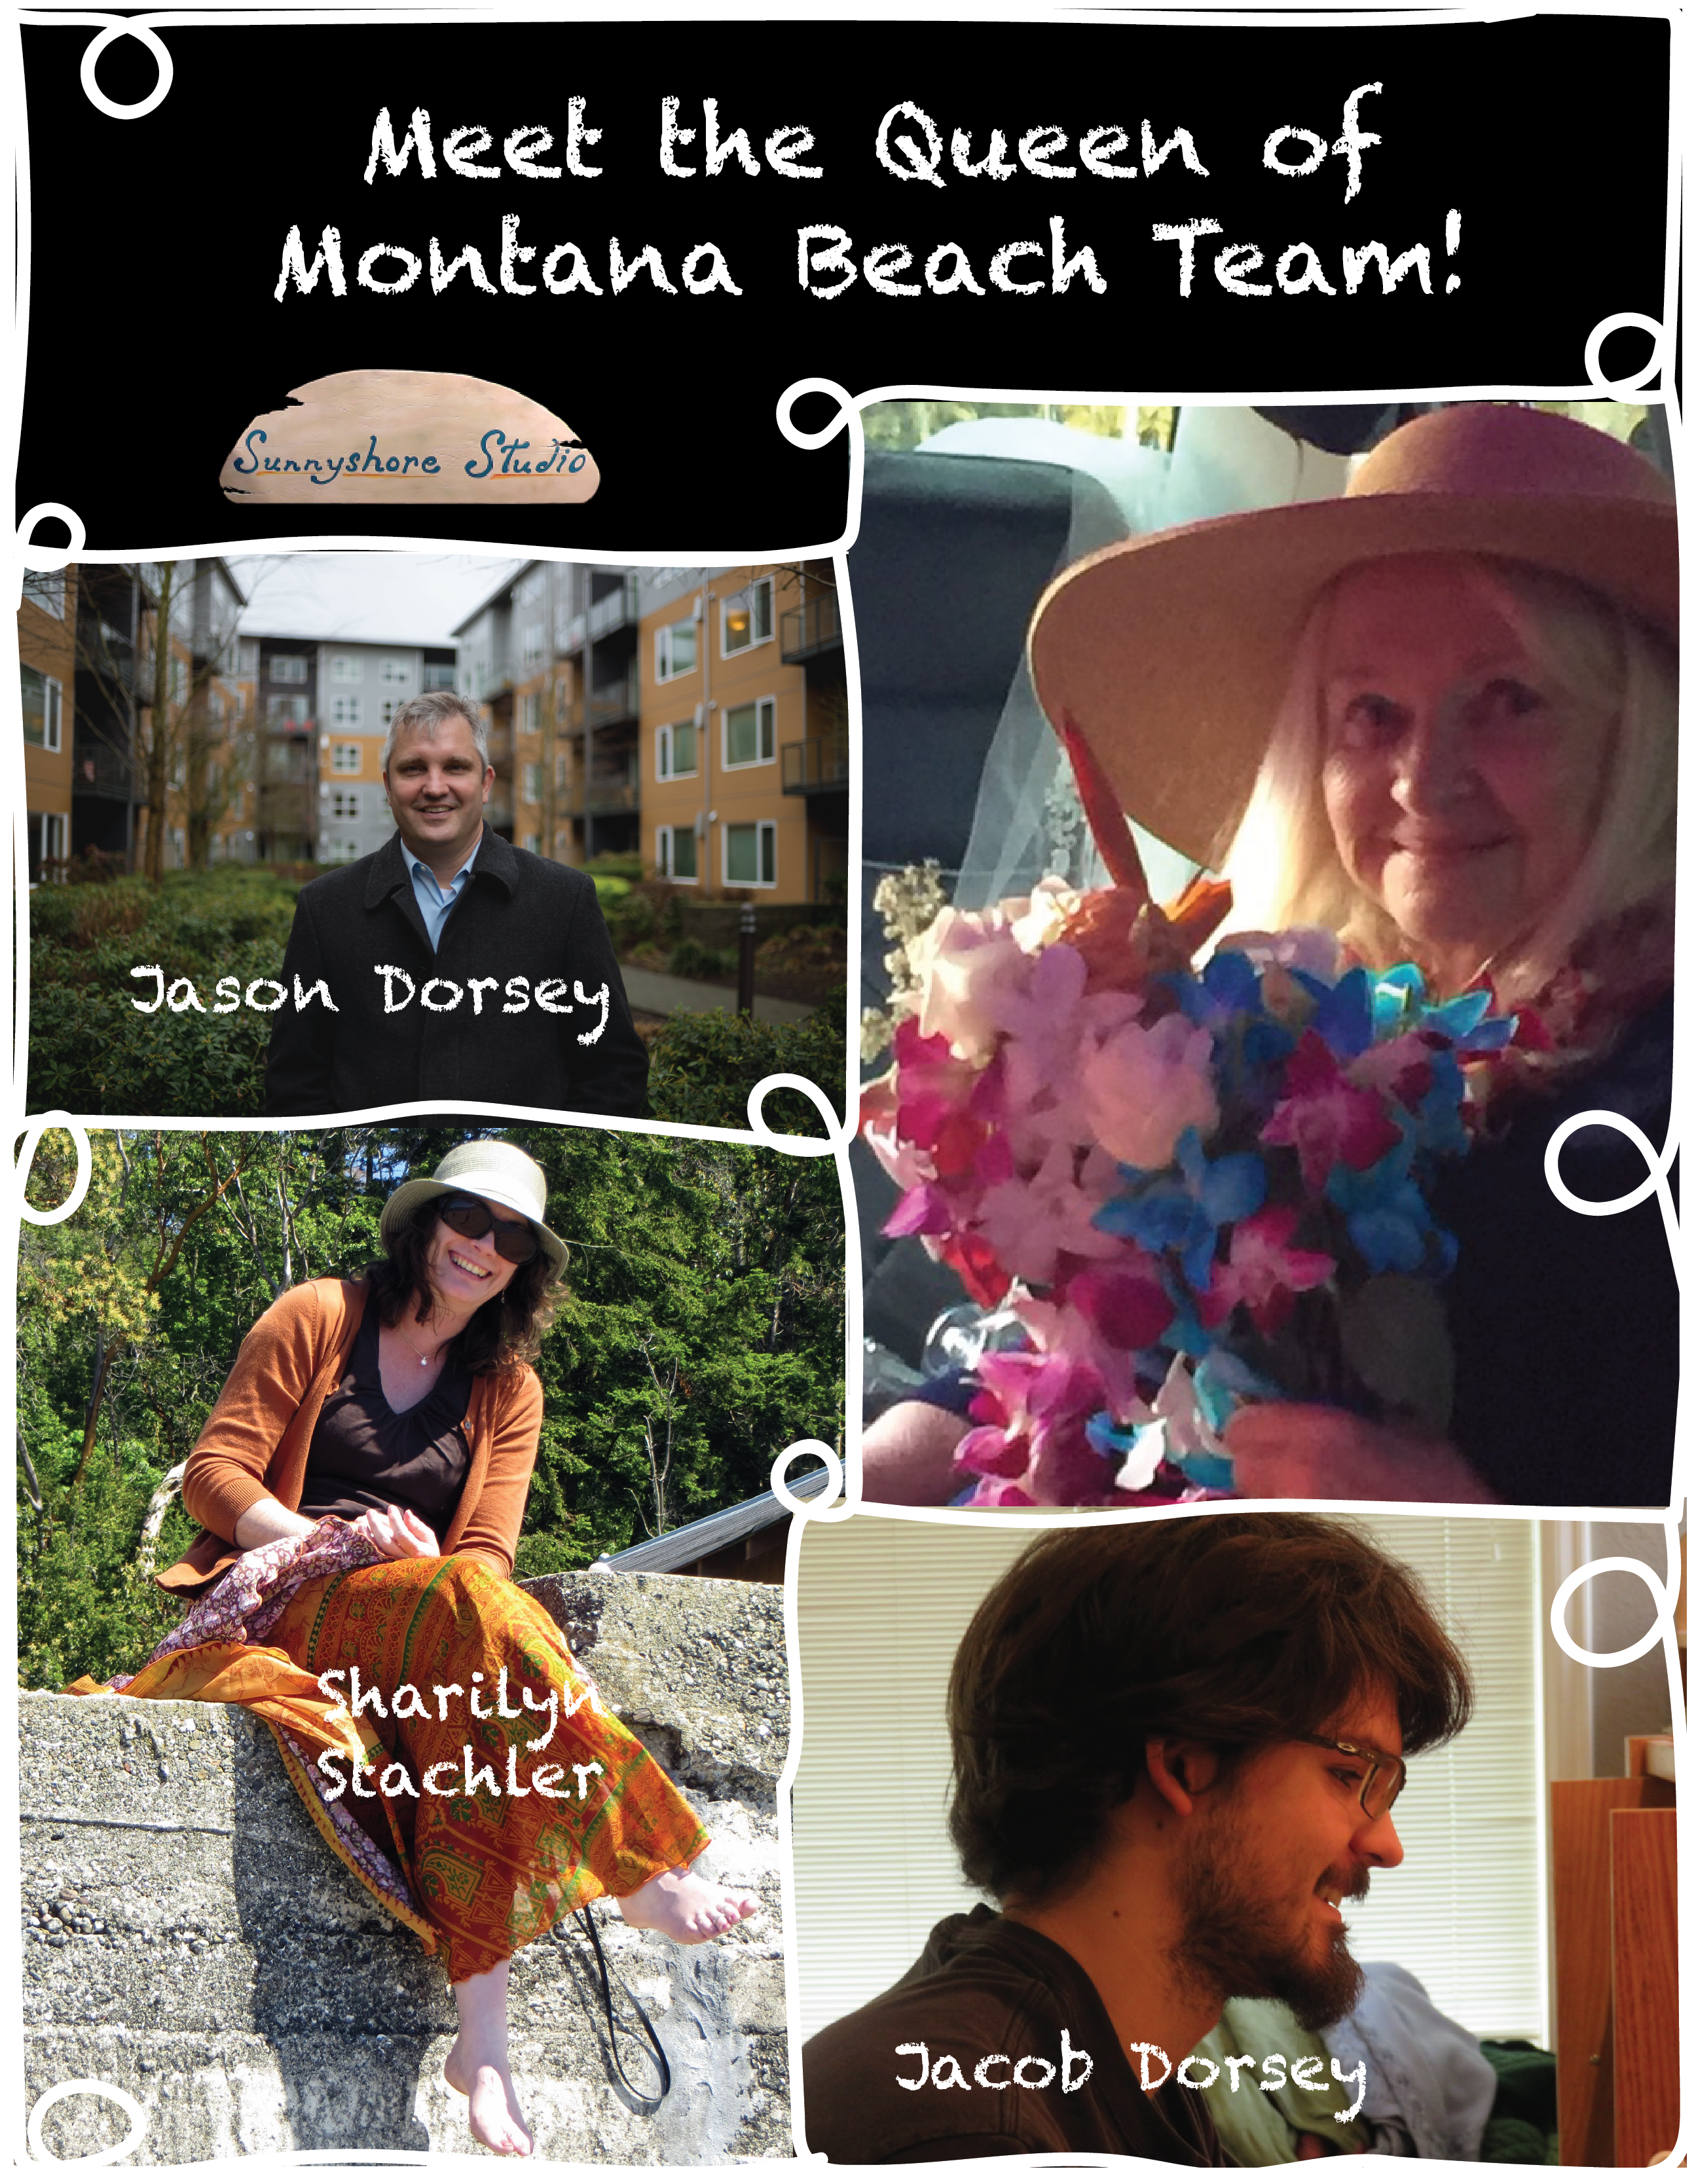 The Queen of Montana Beach Team: Interviews with Toni McCarty (author), Sharilyn Stachler (editor), Jacob Dorsey (layout), and Jason Dorsey (graphic design).